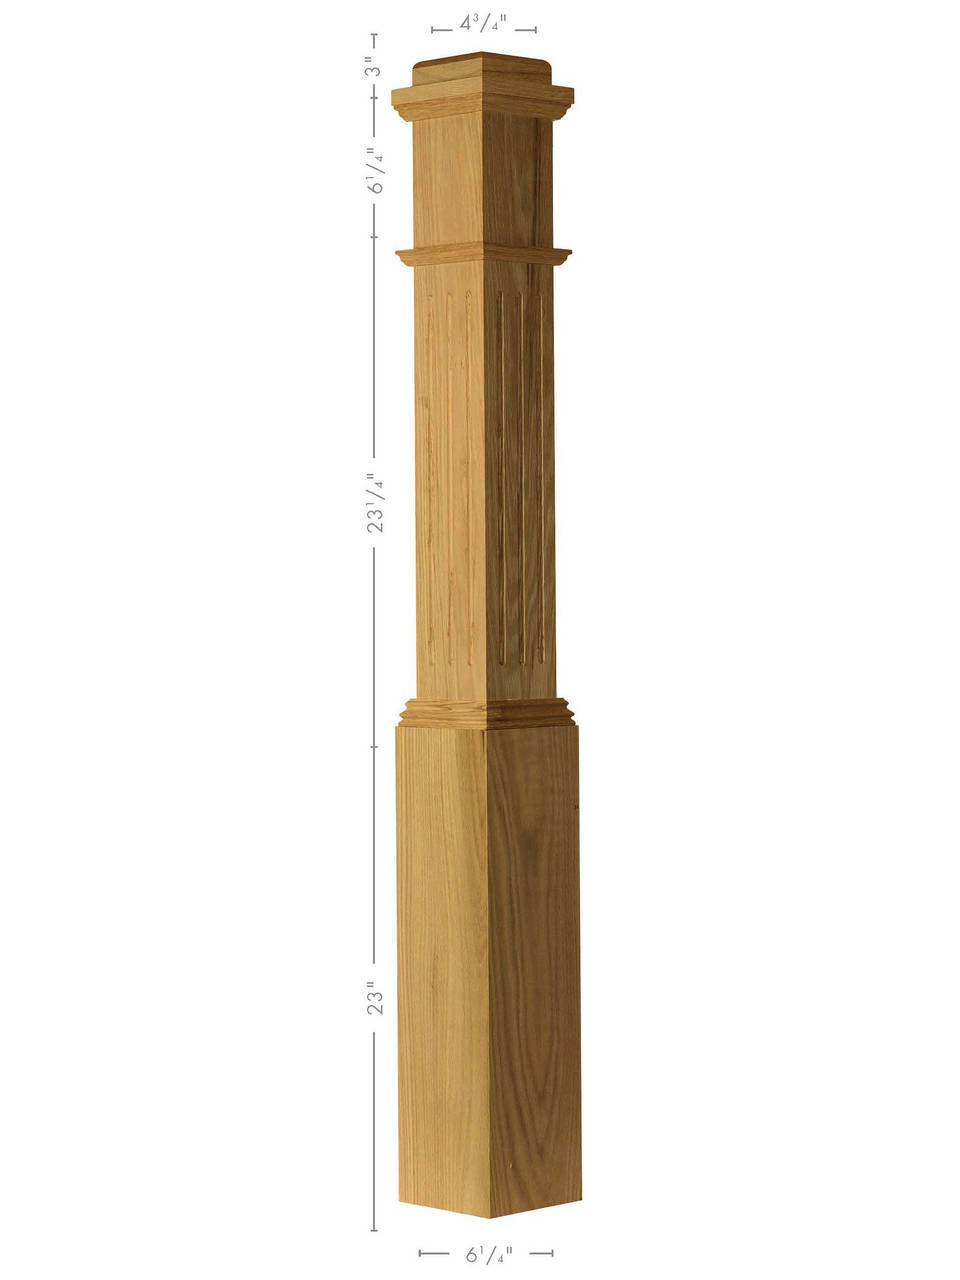 F-4091 Primed with Special Species Trim Fluted Box Newel Post (Red Oak Illustrated)